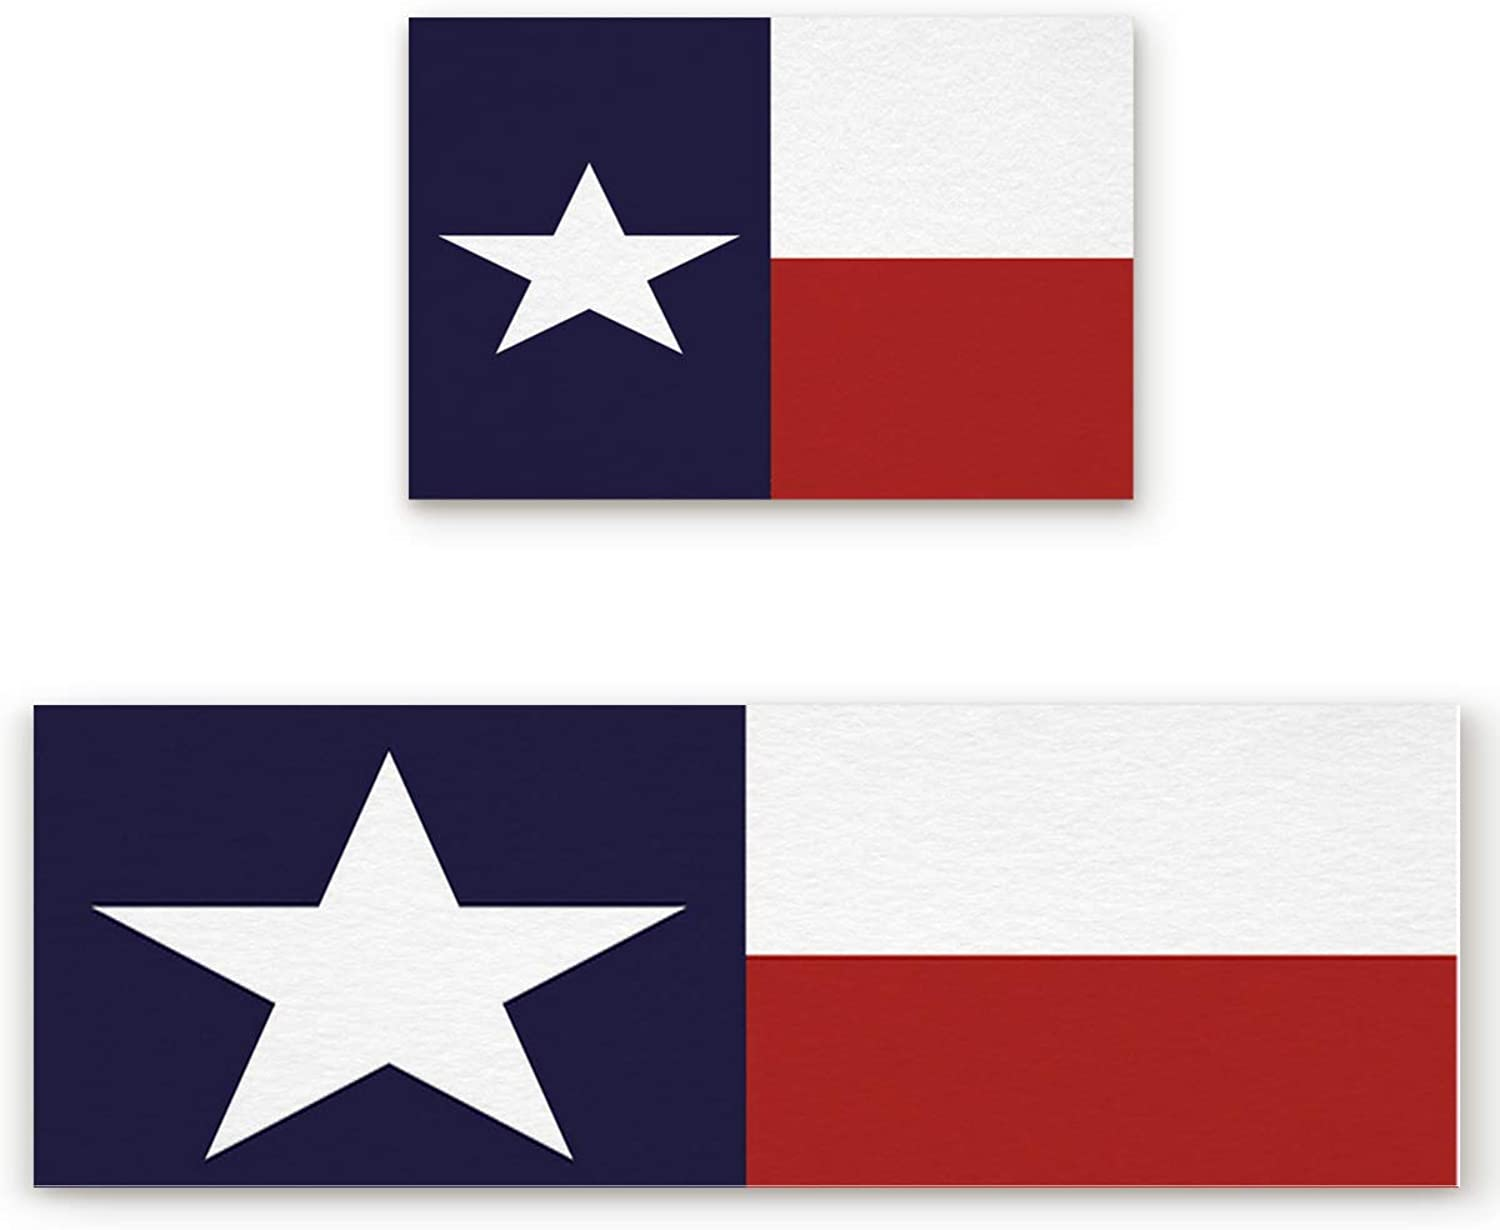 SODIKA 2 Pieces Kitchen Rug Set,Non-Skid Slip Washable Doormat Floor Runner Bathroom Area Rug Carpet,Texas State Flag Red White bluee (19.7x31.5in+19.7x63 inches)